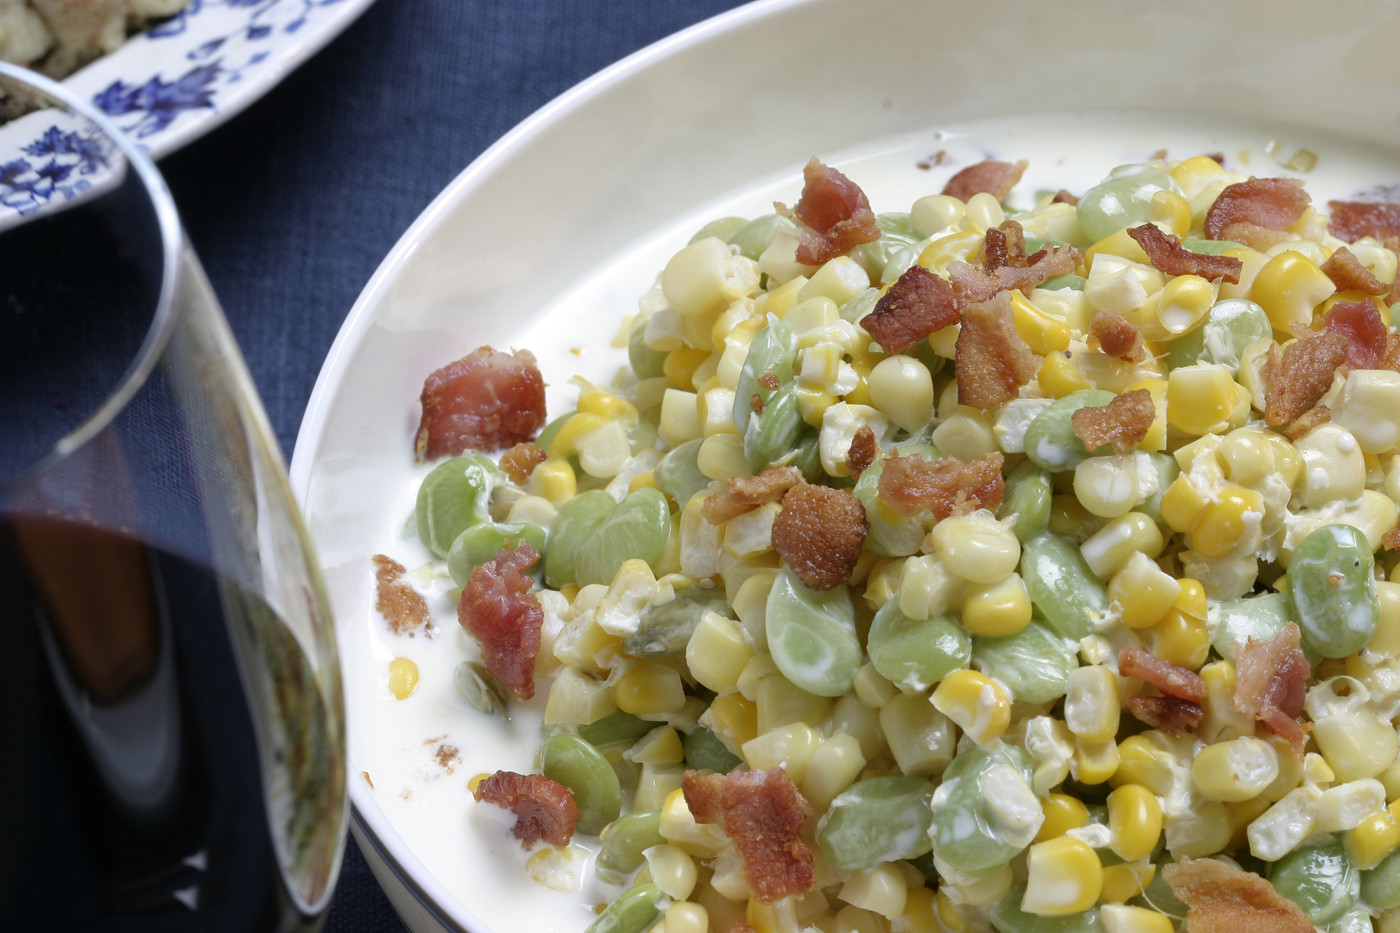 Photos: 97 great Thanksgiving recipes - Succotash